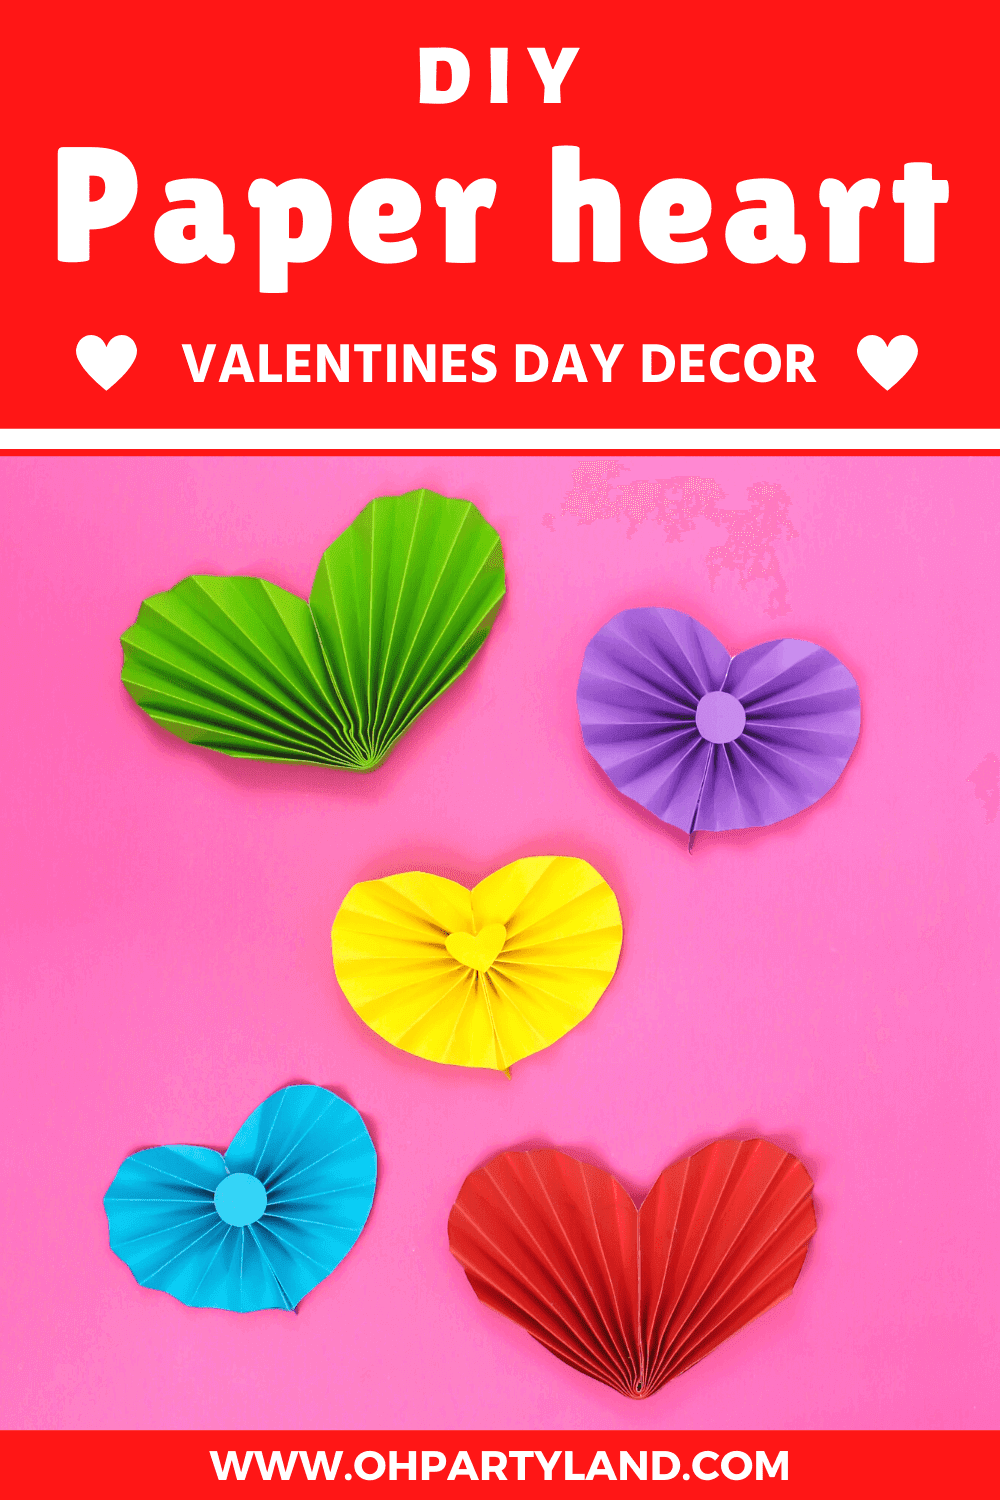 diy paper heart valentines day